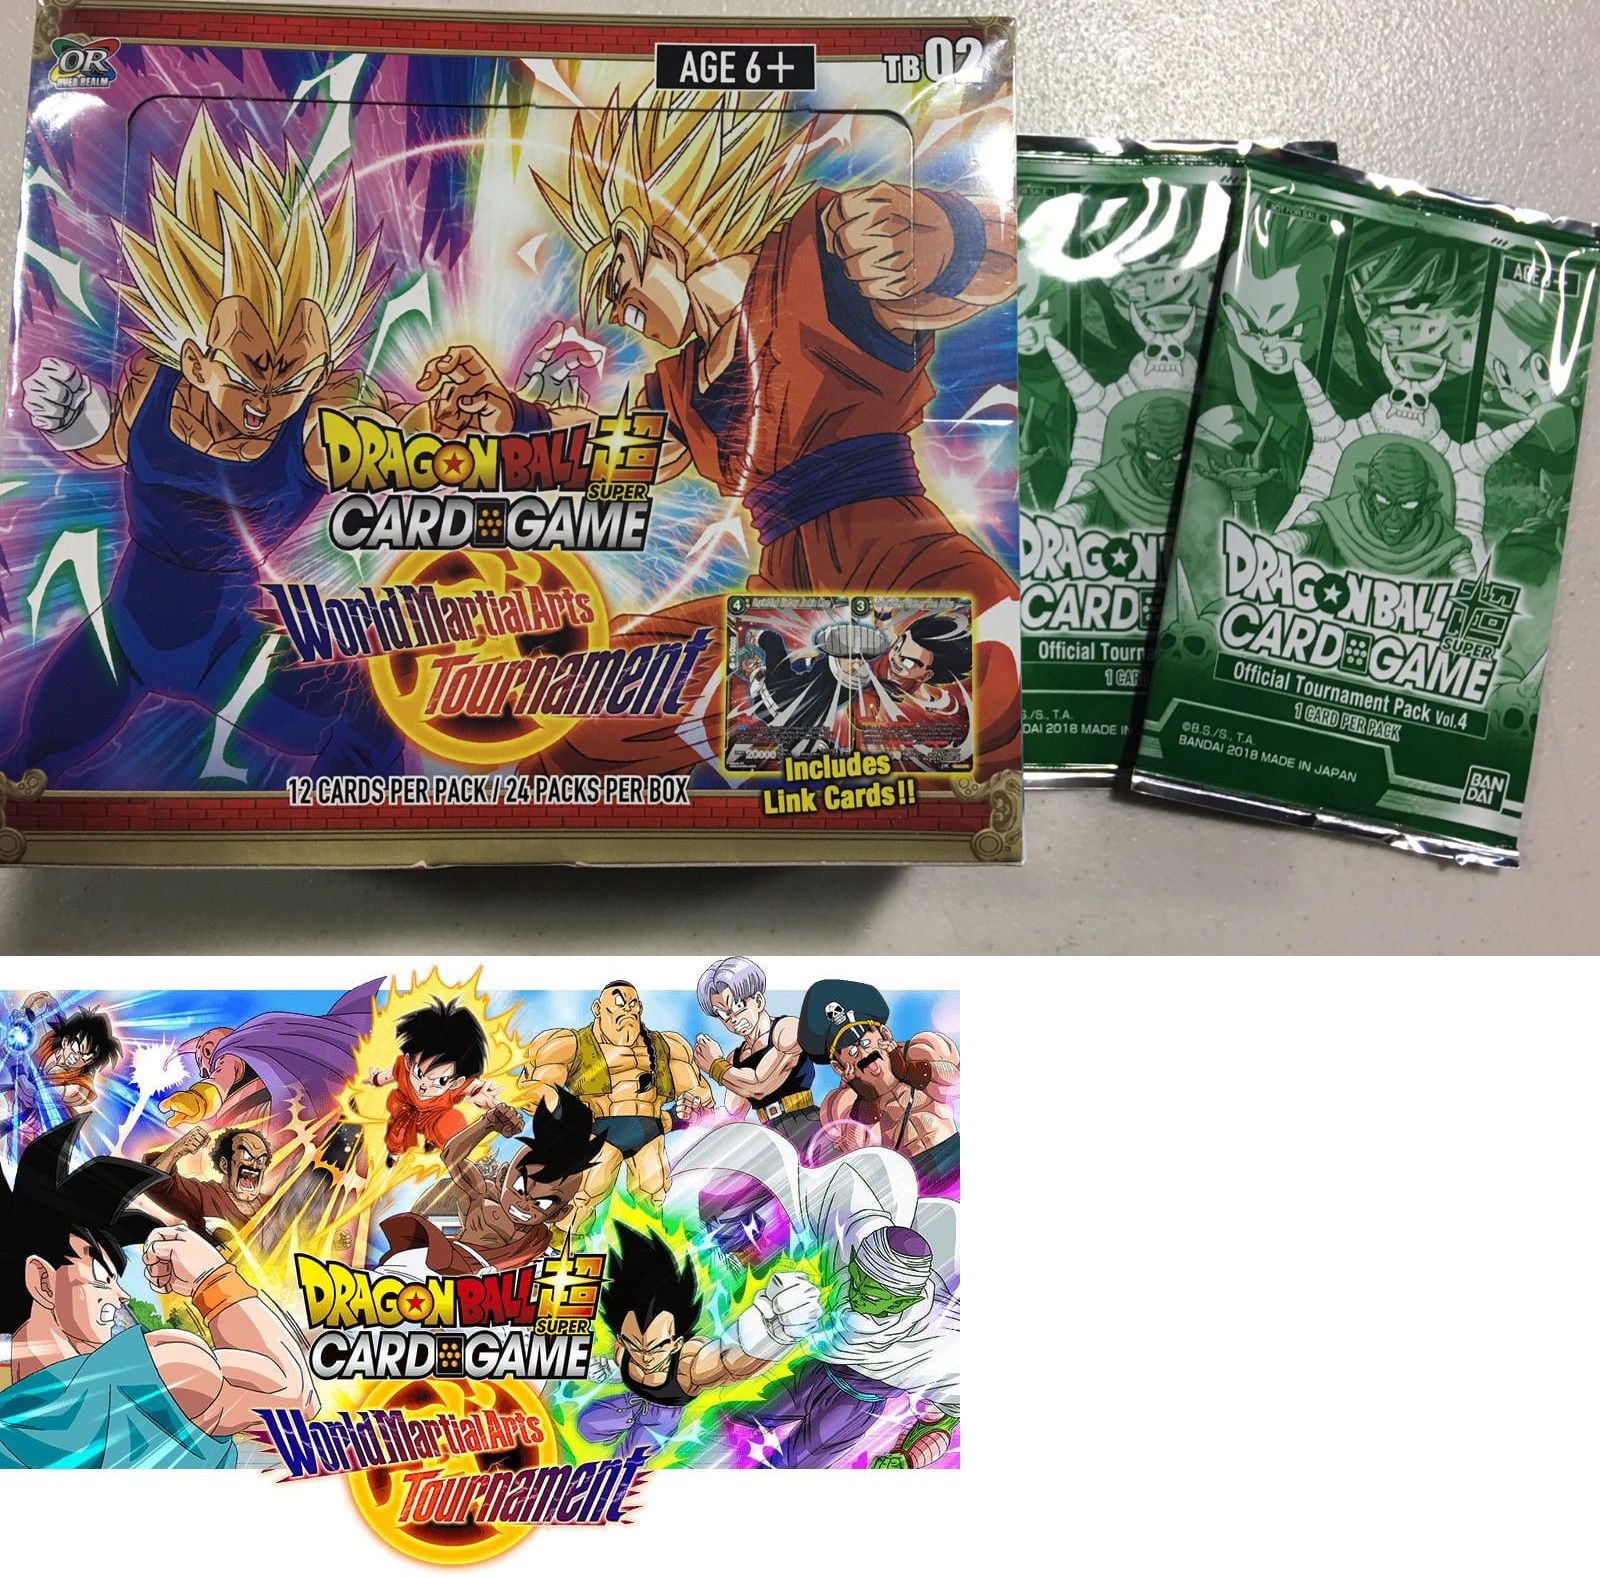 Pin By Zionmoore On Dragon Ball Super Card Game Dragon